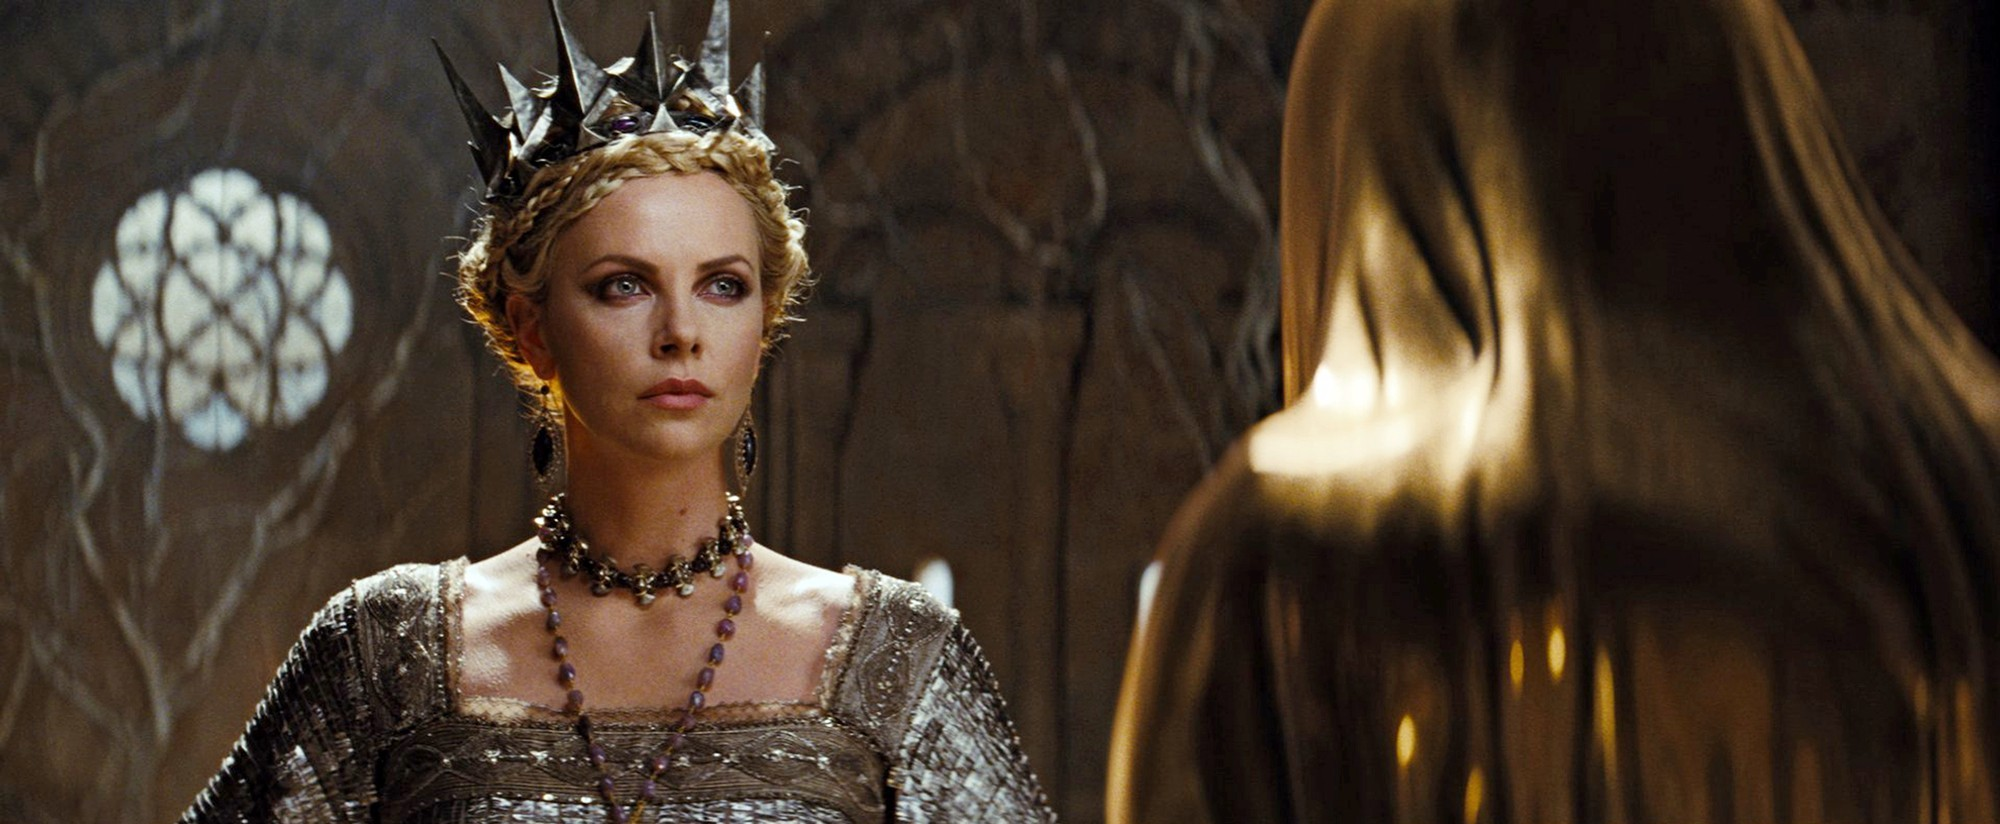 snow white huntsman Charlize Theron